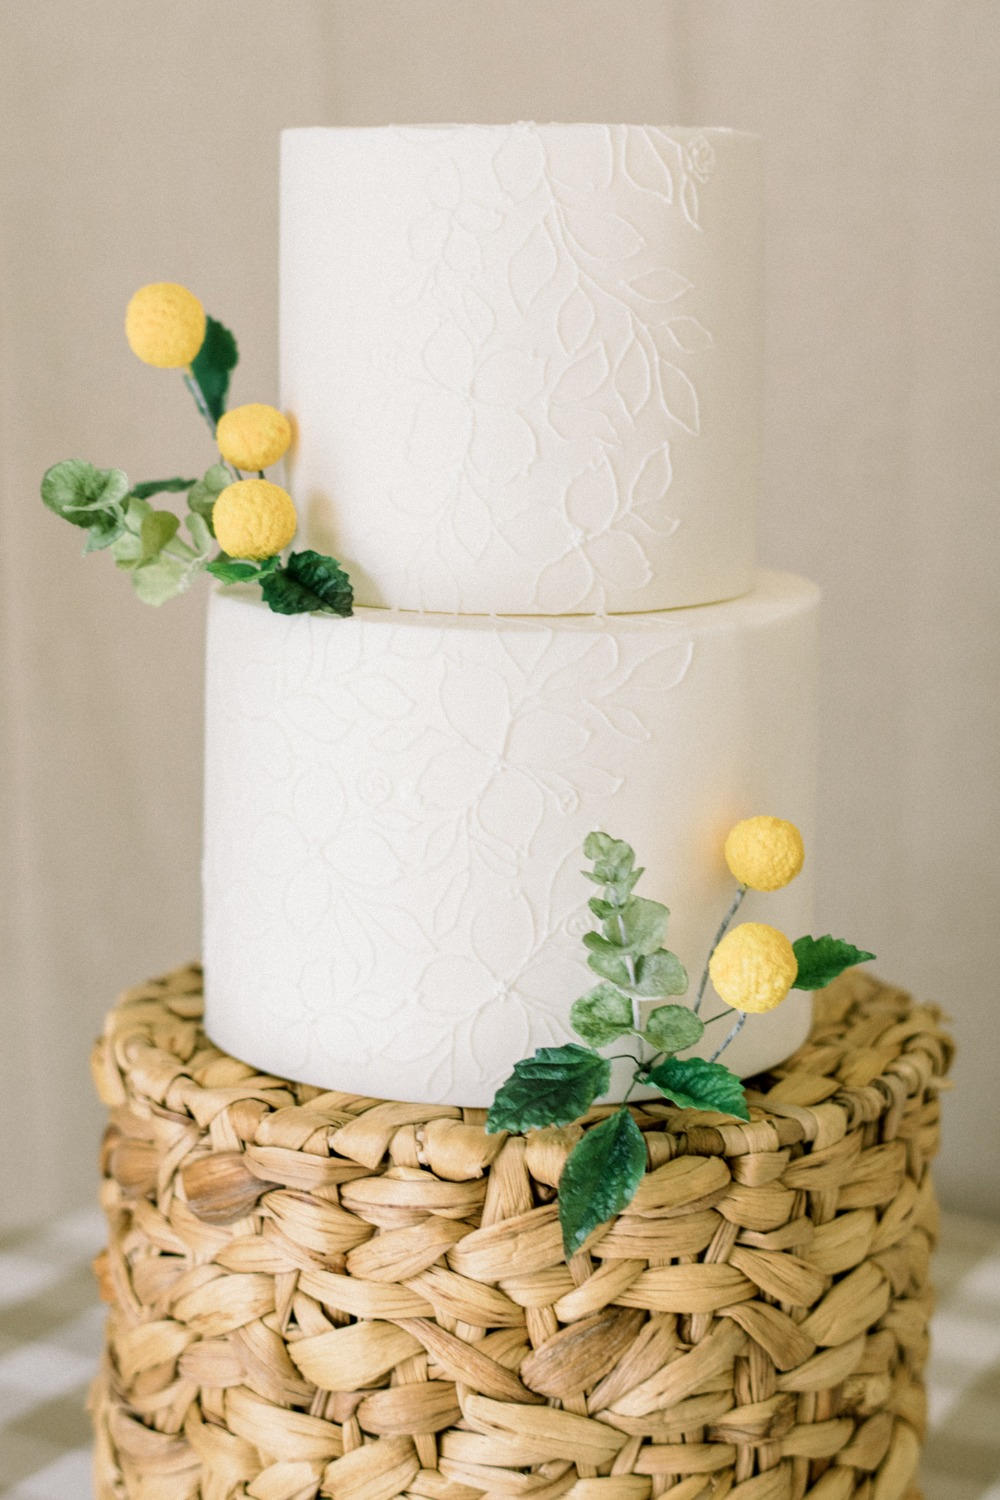 white wedding cake adorned with billy balls from Sweet Autumn Bakery